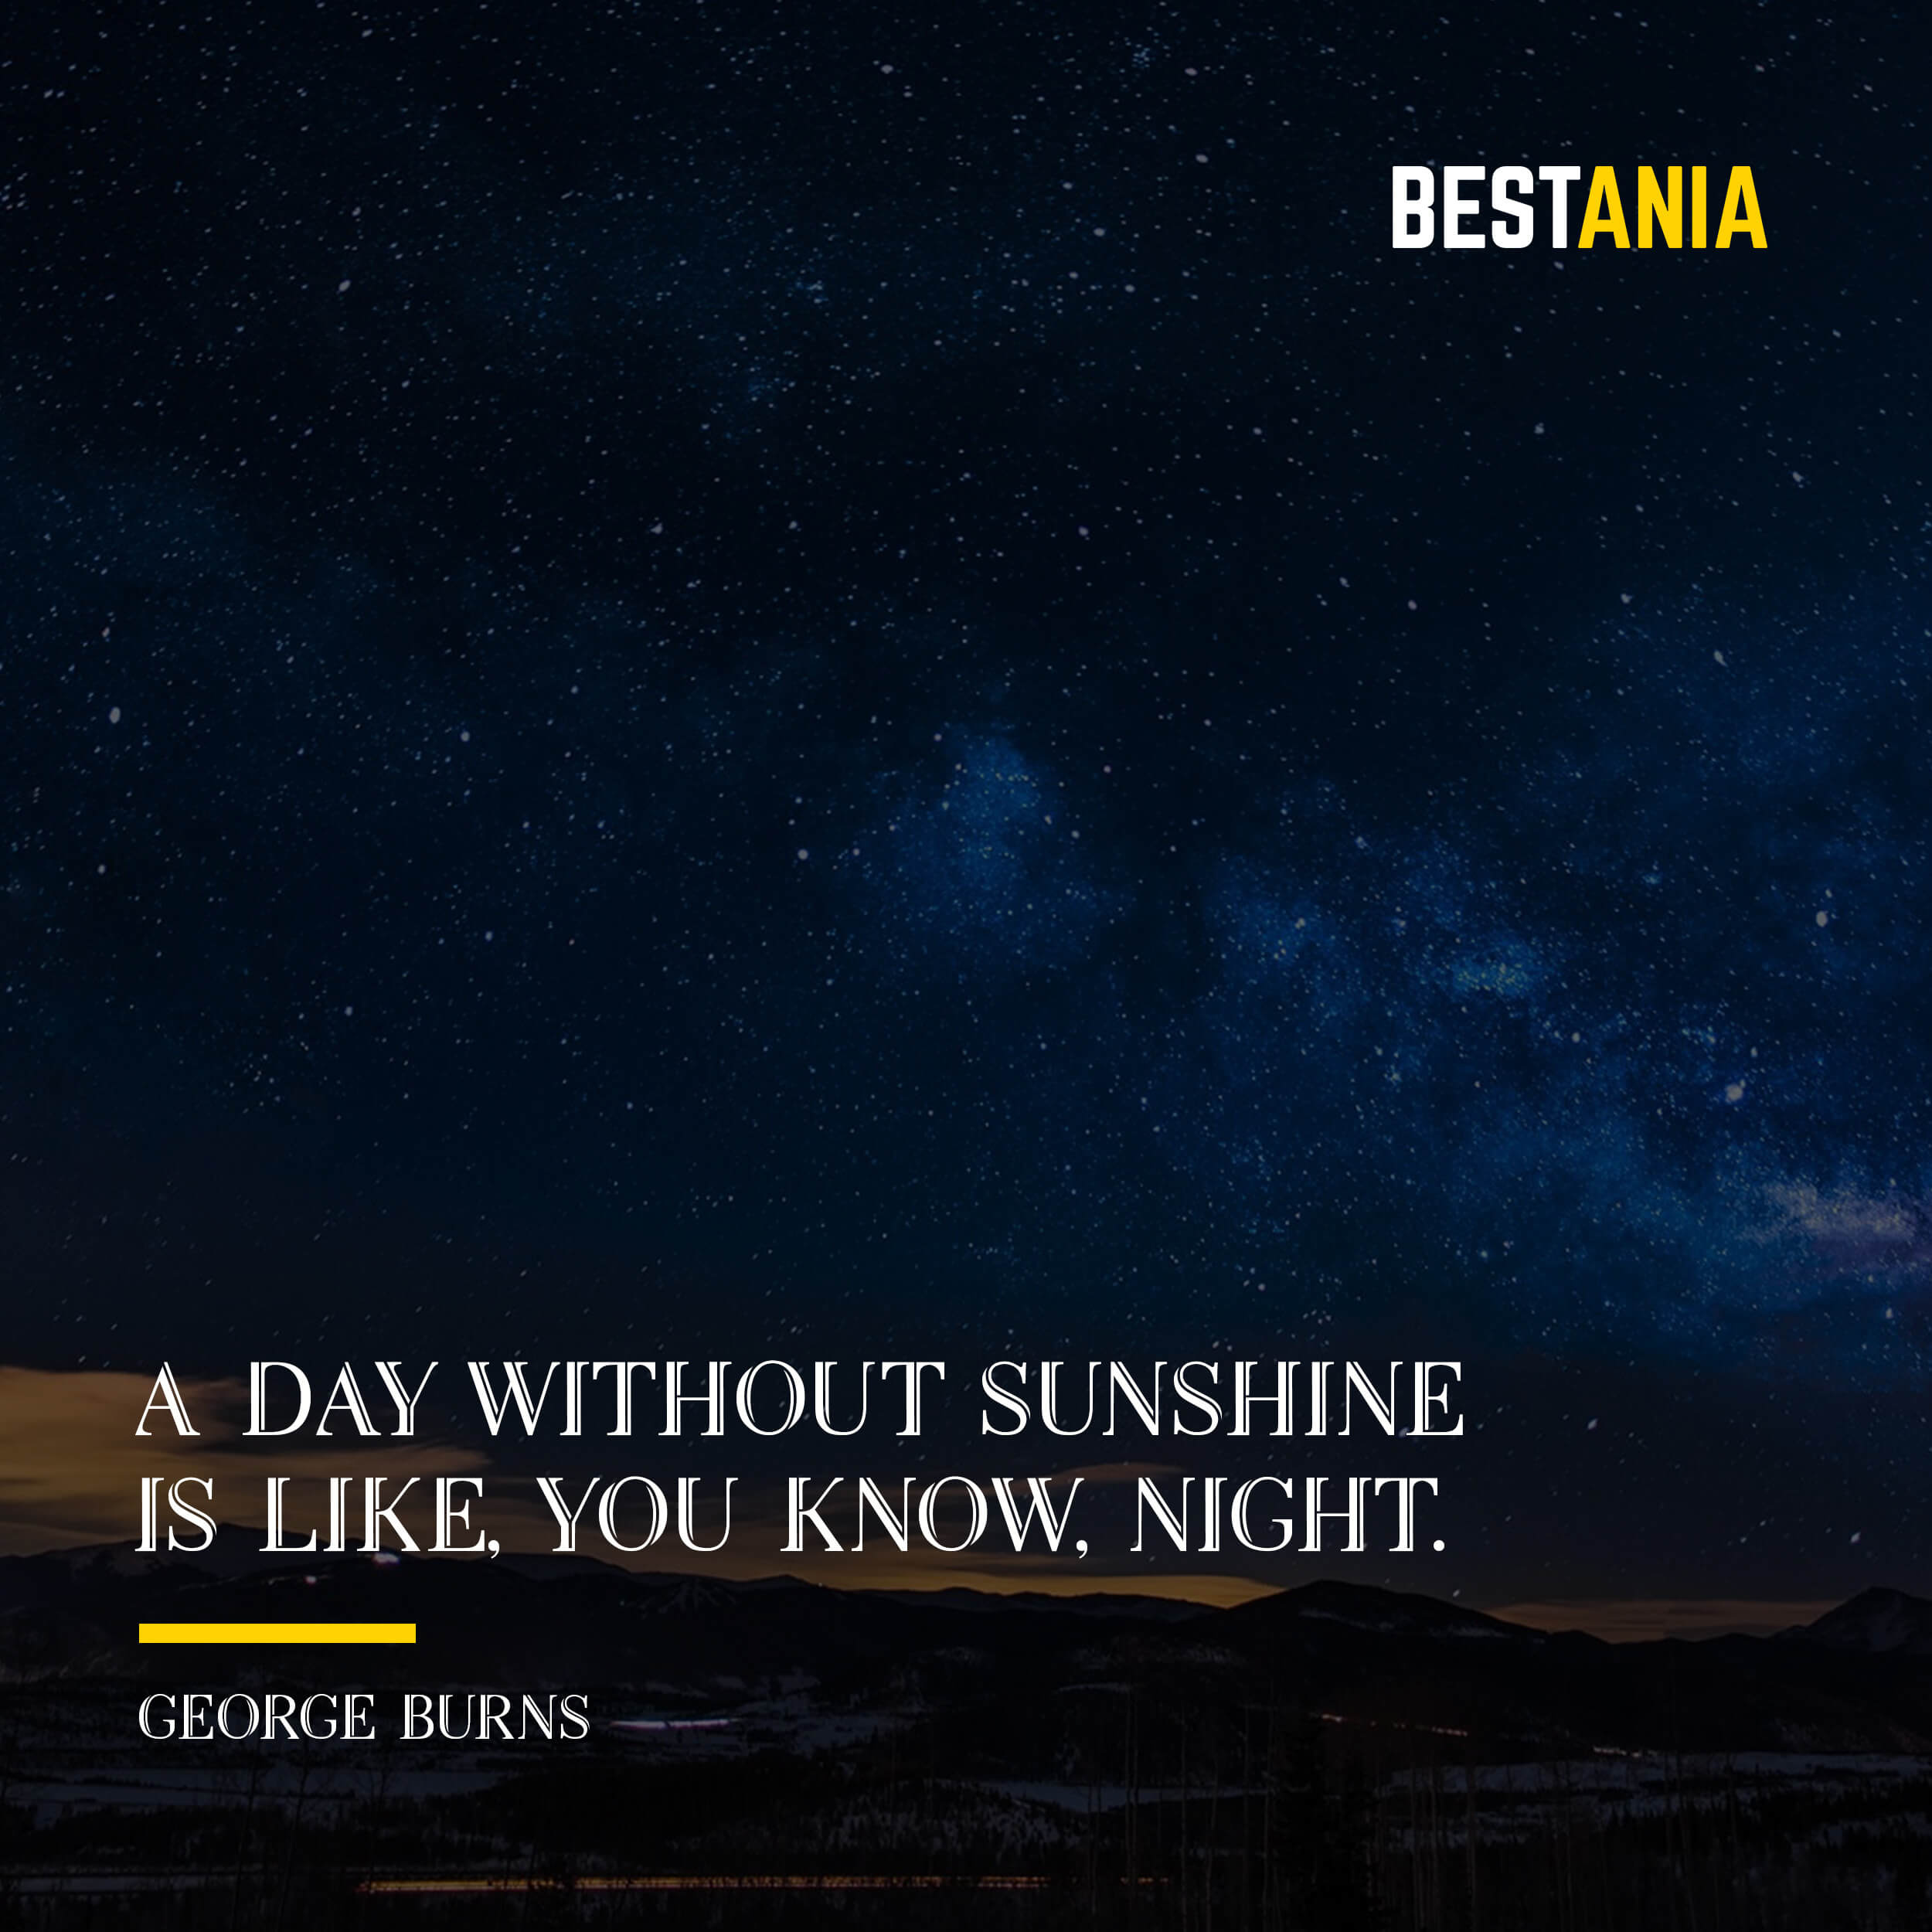 """A DAY WITHOUT SUNSHINE IS LIKE, YOU KNOW, NIGHT.""  STEVE MARTIN"